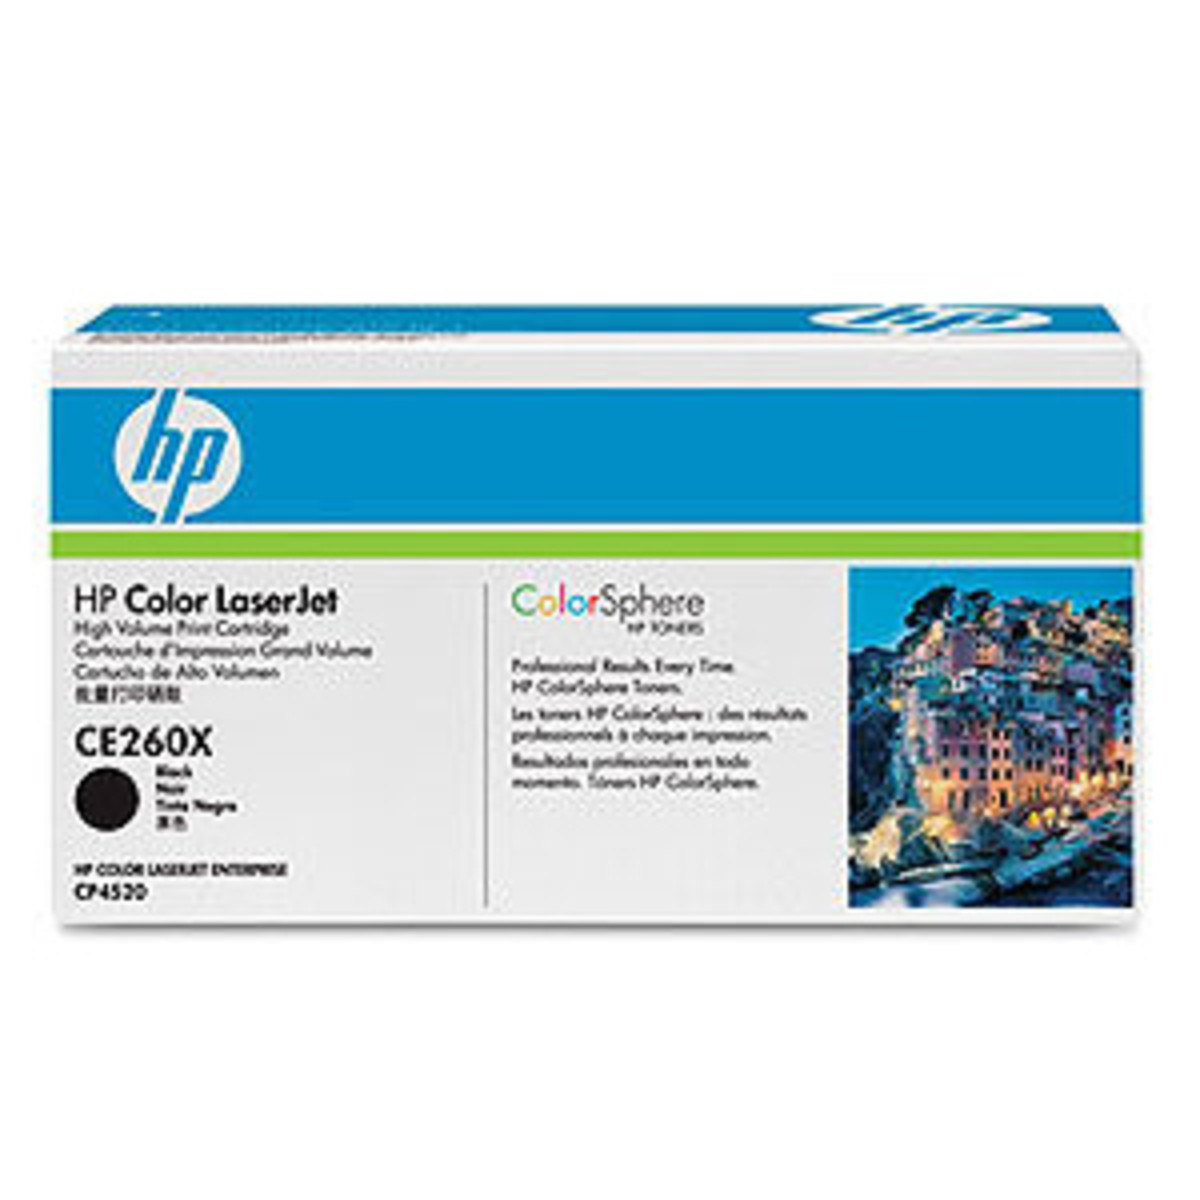 HP 649X (CE260X) Black Toner Cartridge - High Yield